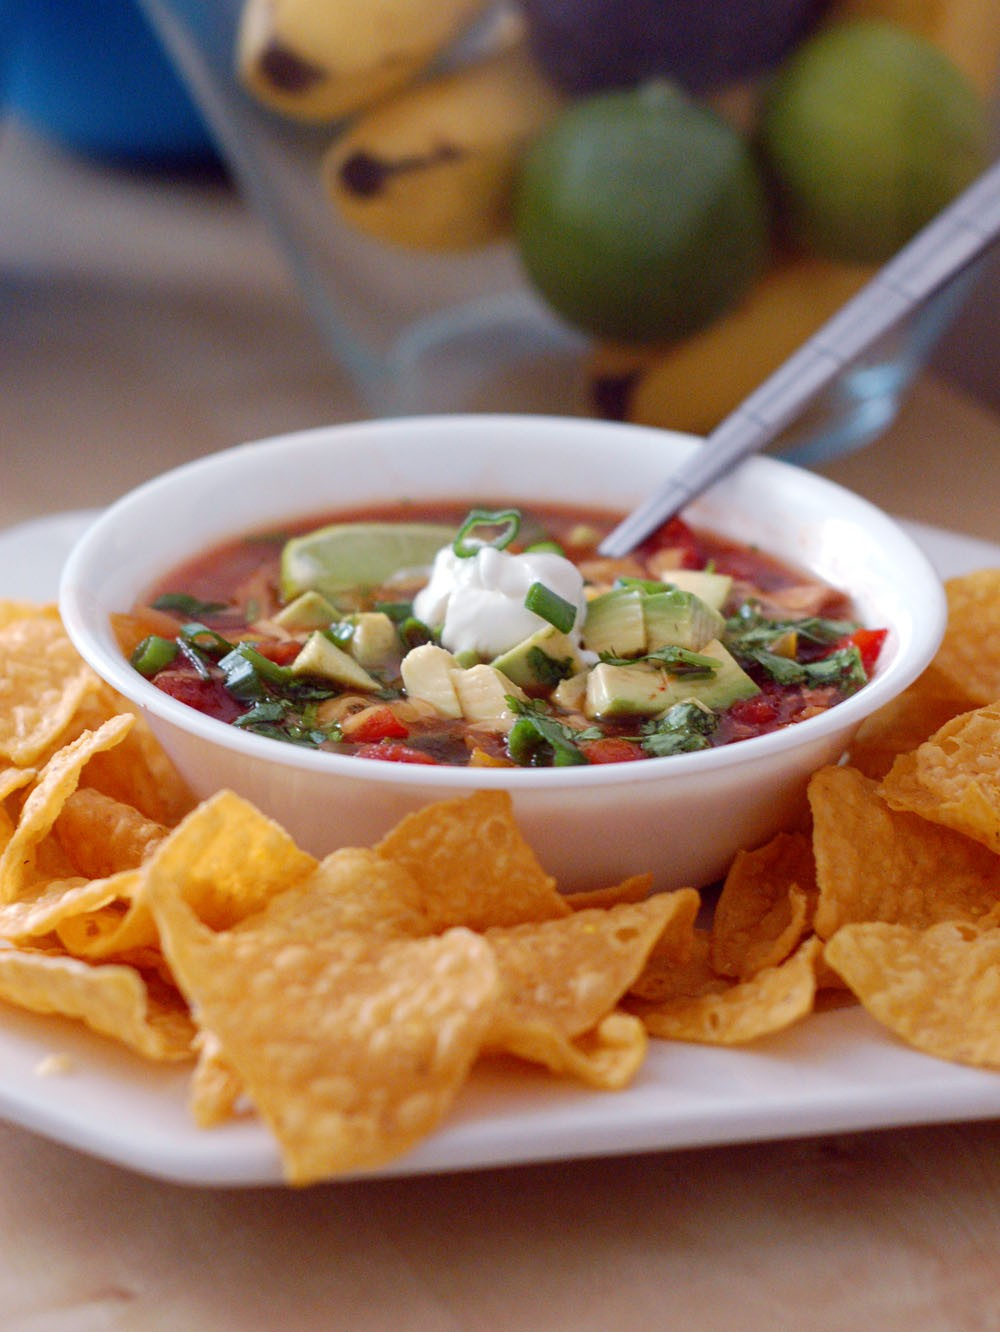 How To Make Slow-Cooker Chicken Tortilla Soup - Glorious Soup Recipes